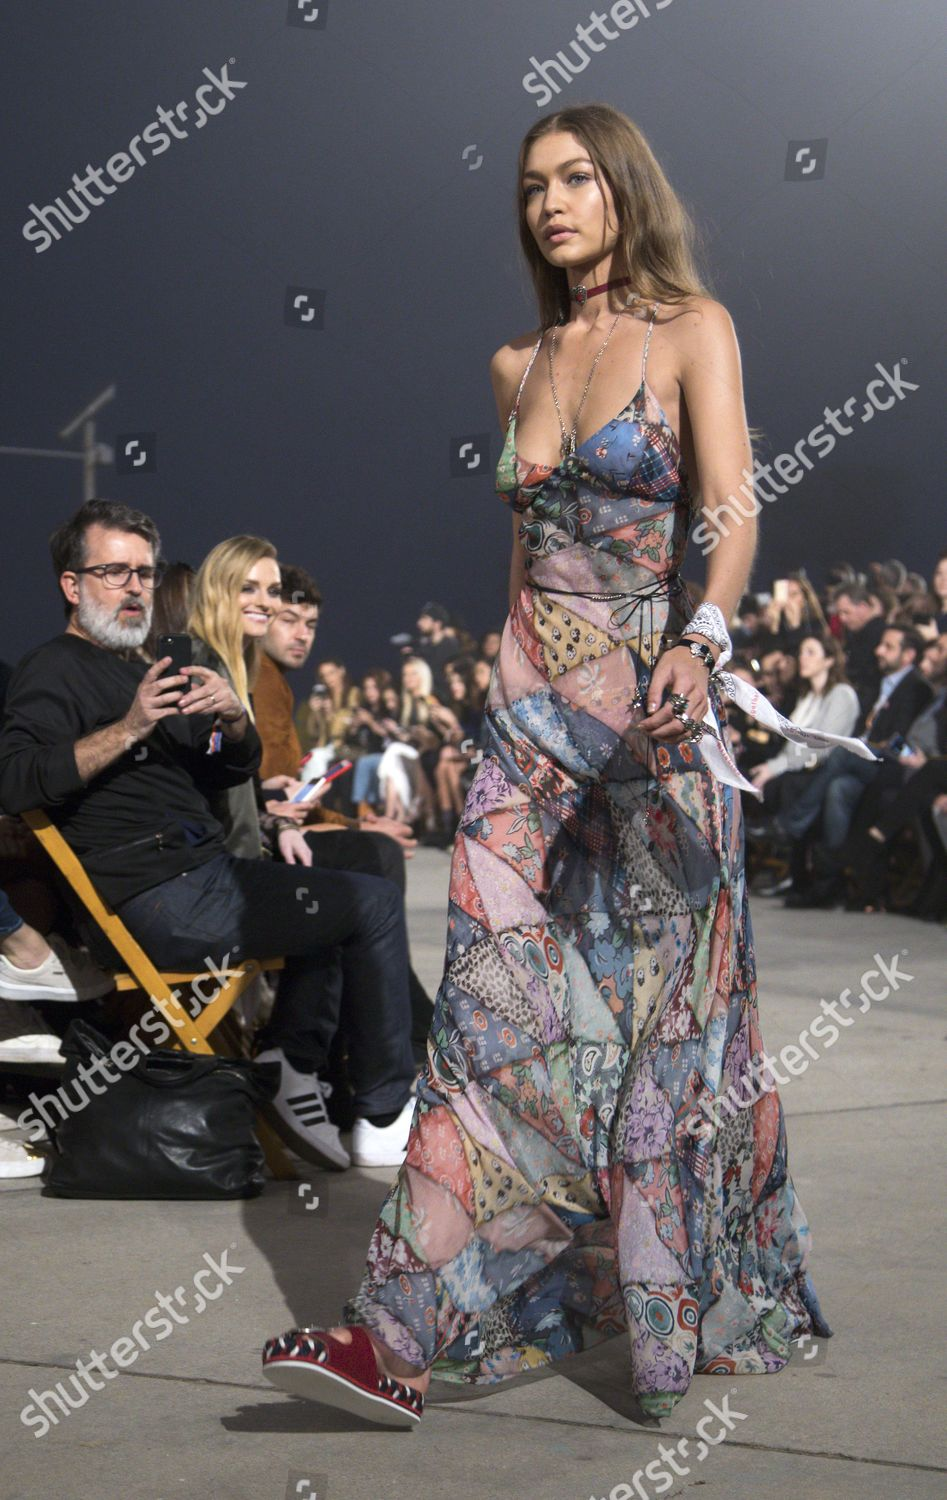 20339394 Stock photo of Tommy Hilfiger spring runway fashion show in Venice Beach,  California, USA